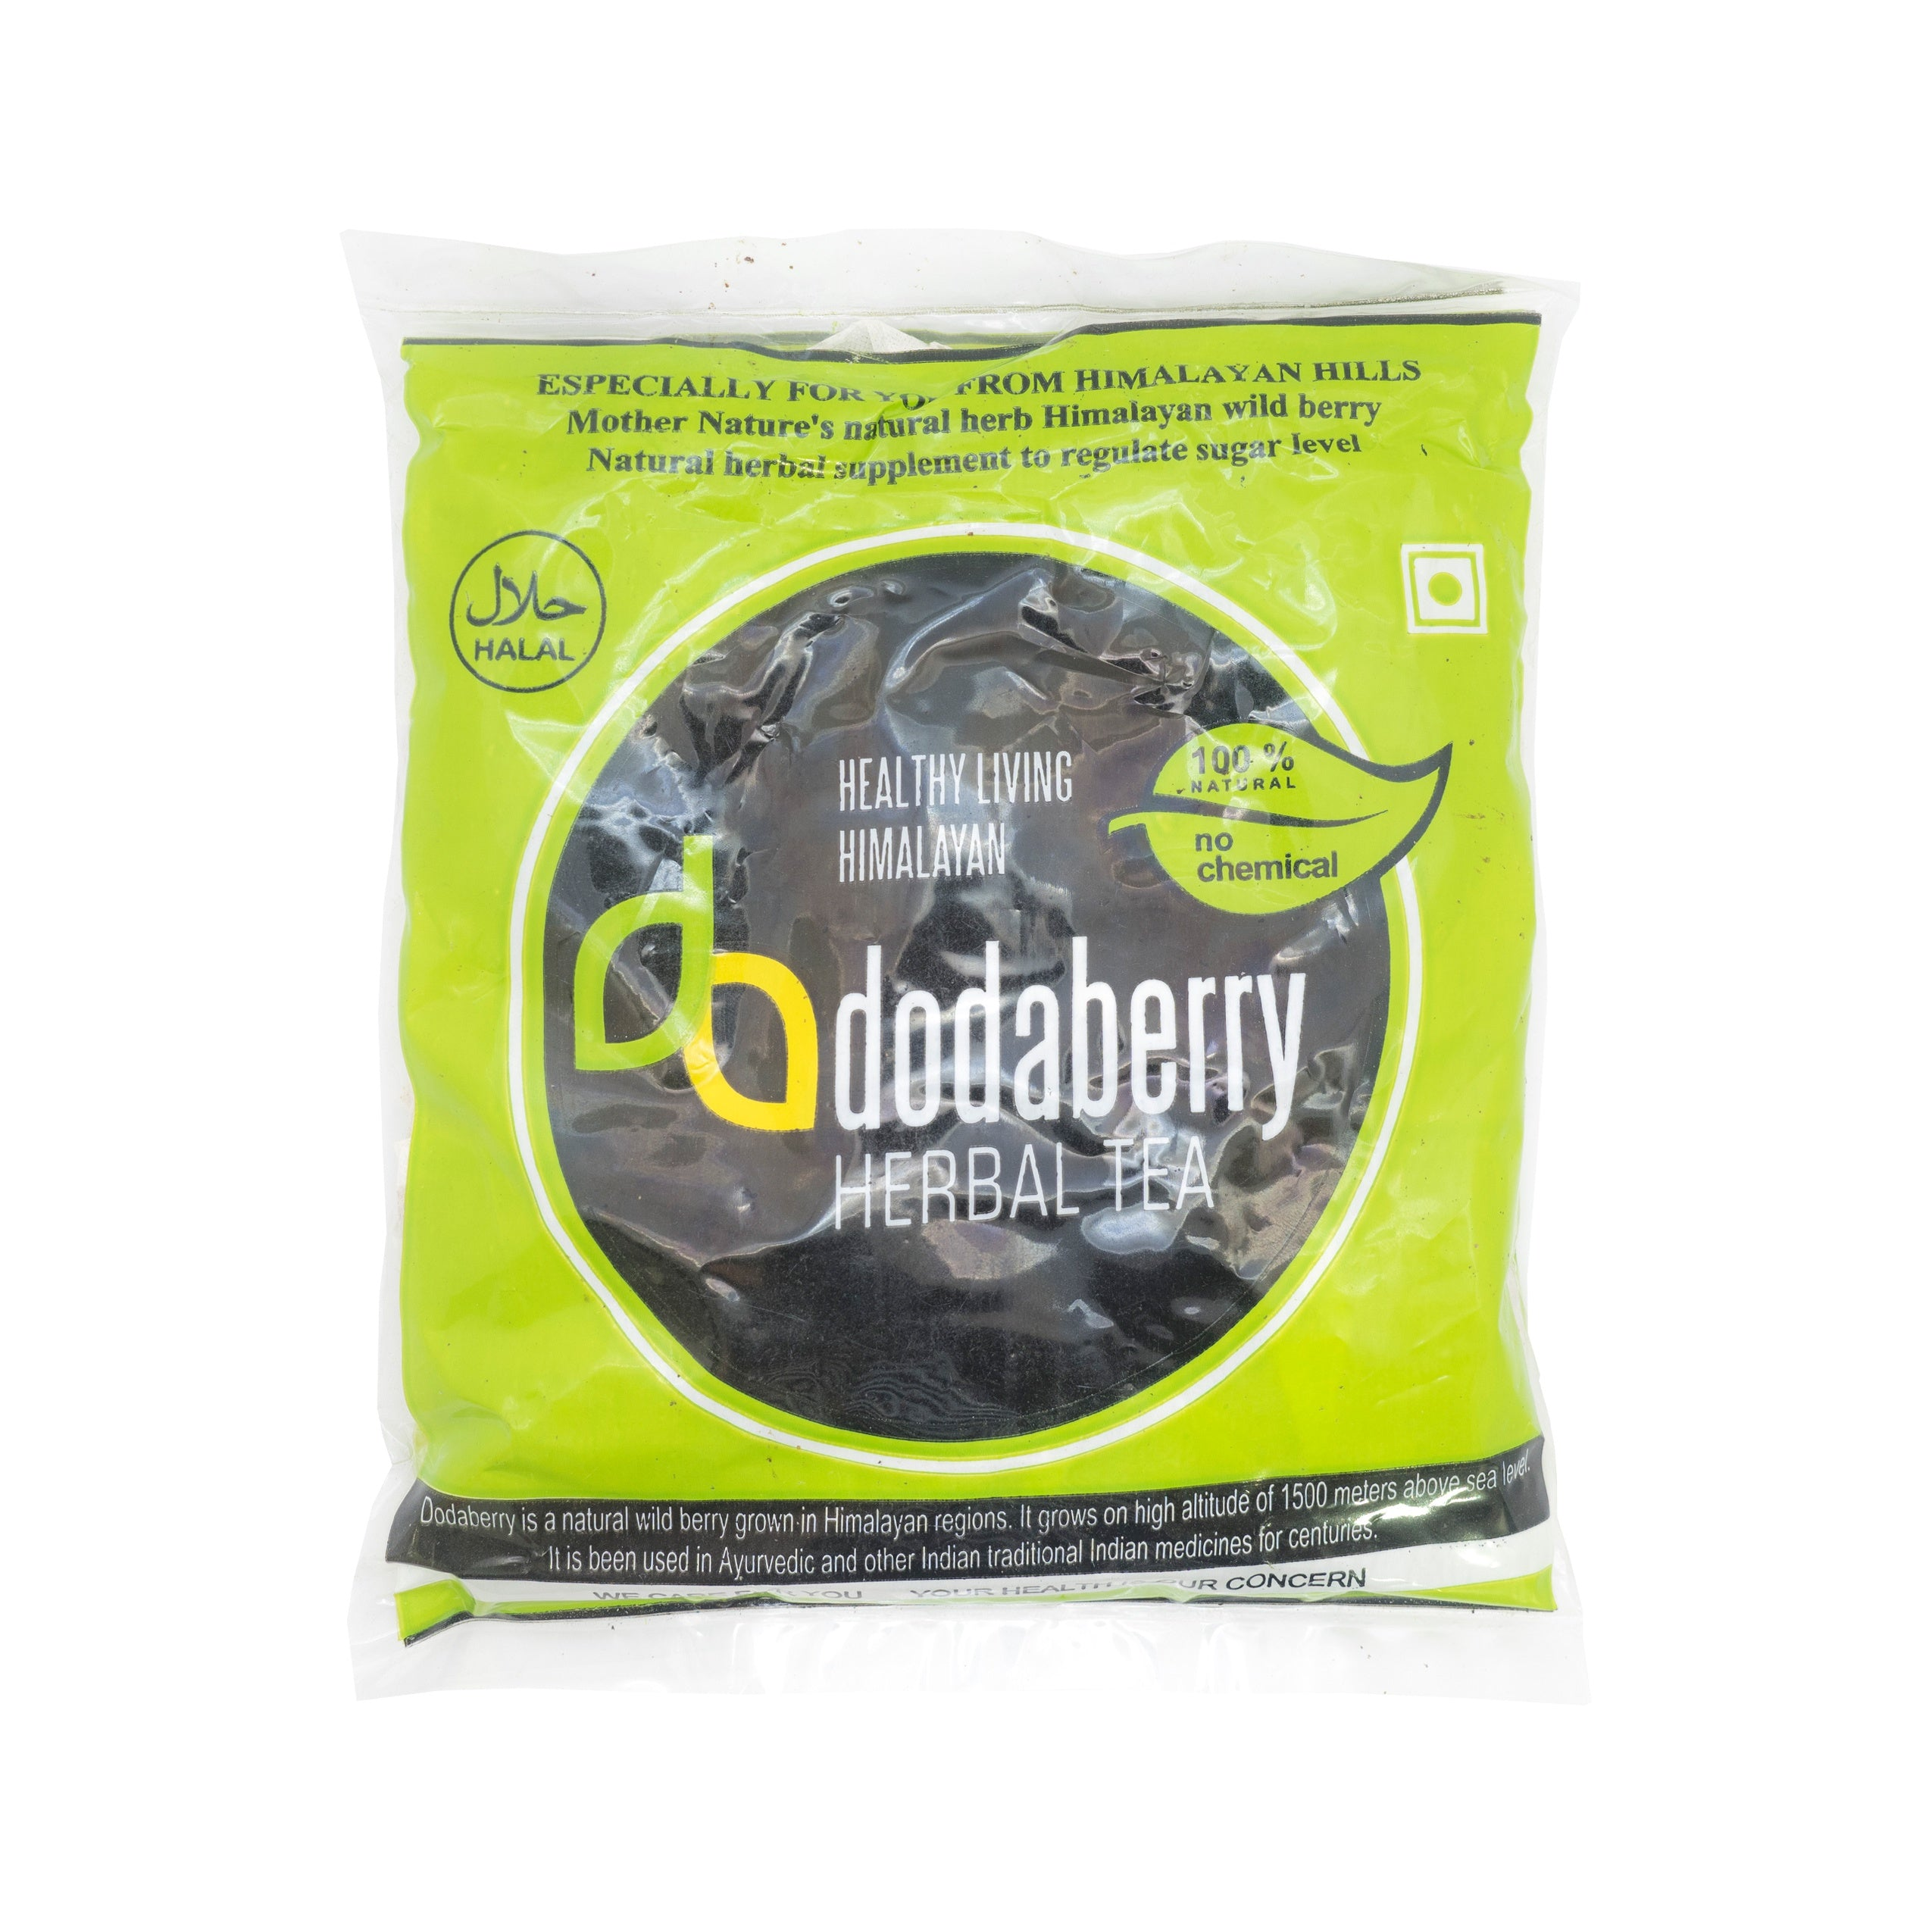 Dodaberry, Herbal Tea, 30 teabags @200 g